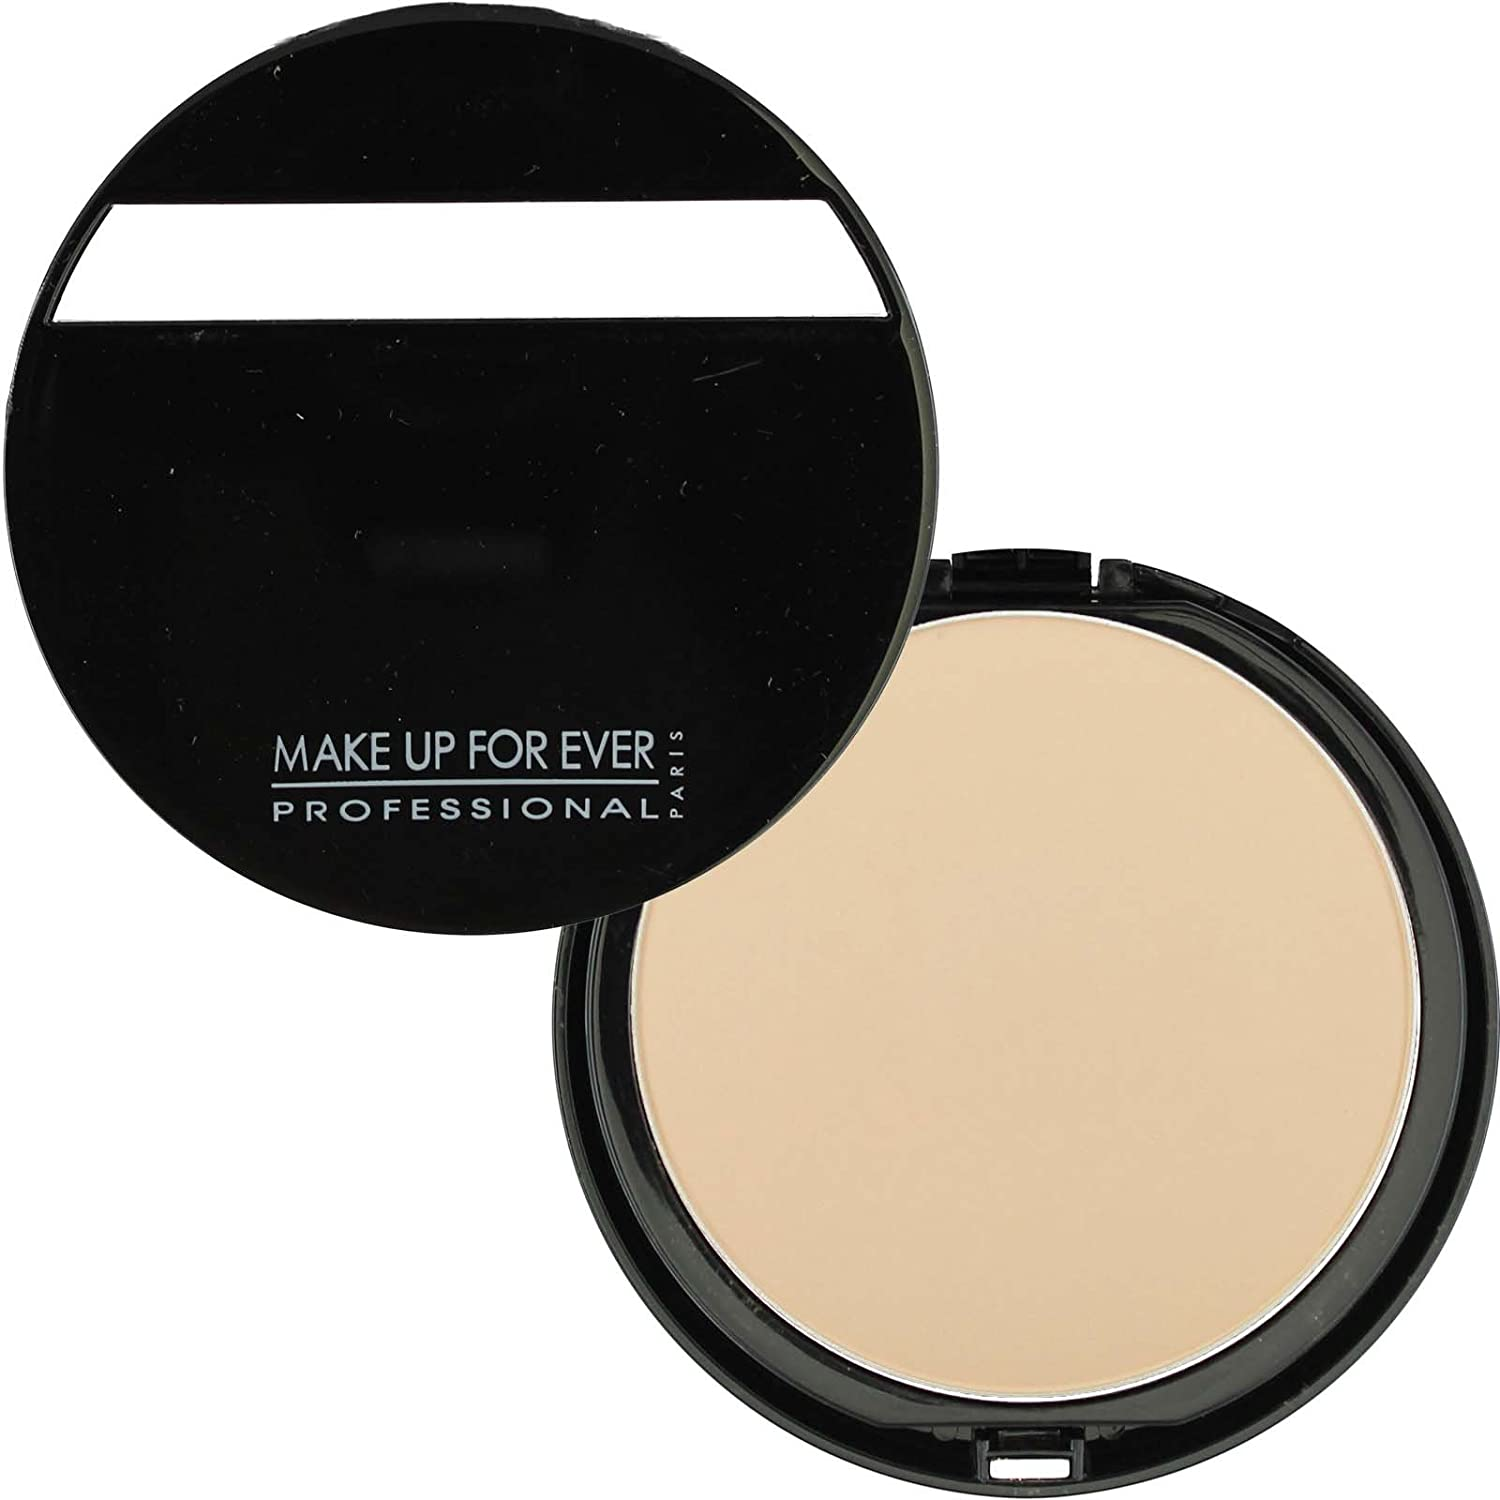 B000N967MS MAKE UP FOR EVER Duo Mat Powder Foundation 200 - Beige Opalescent 61wpYoIXyrL._SL1500_